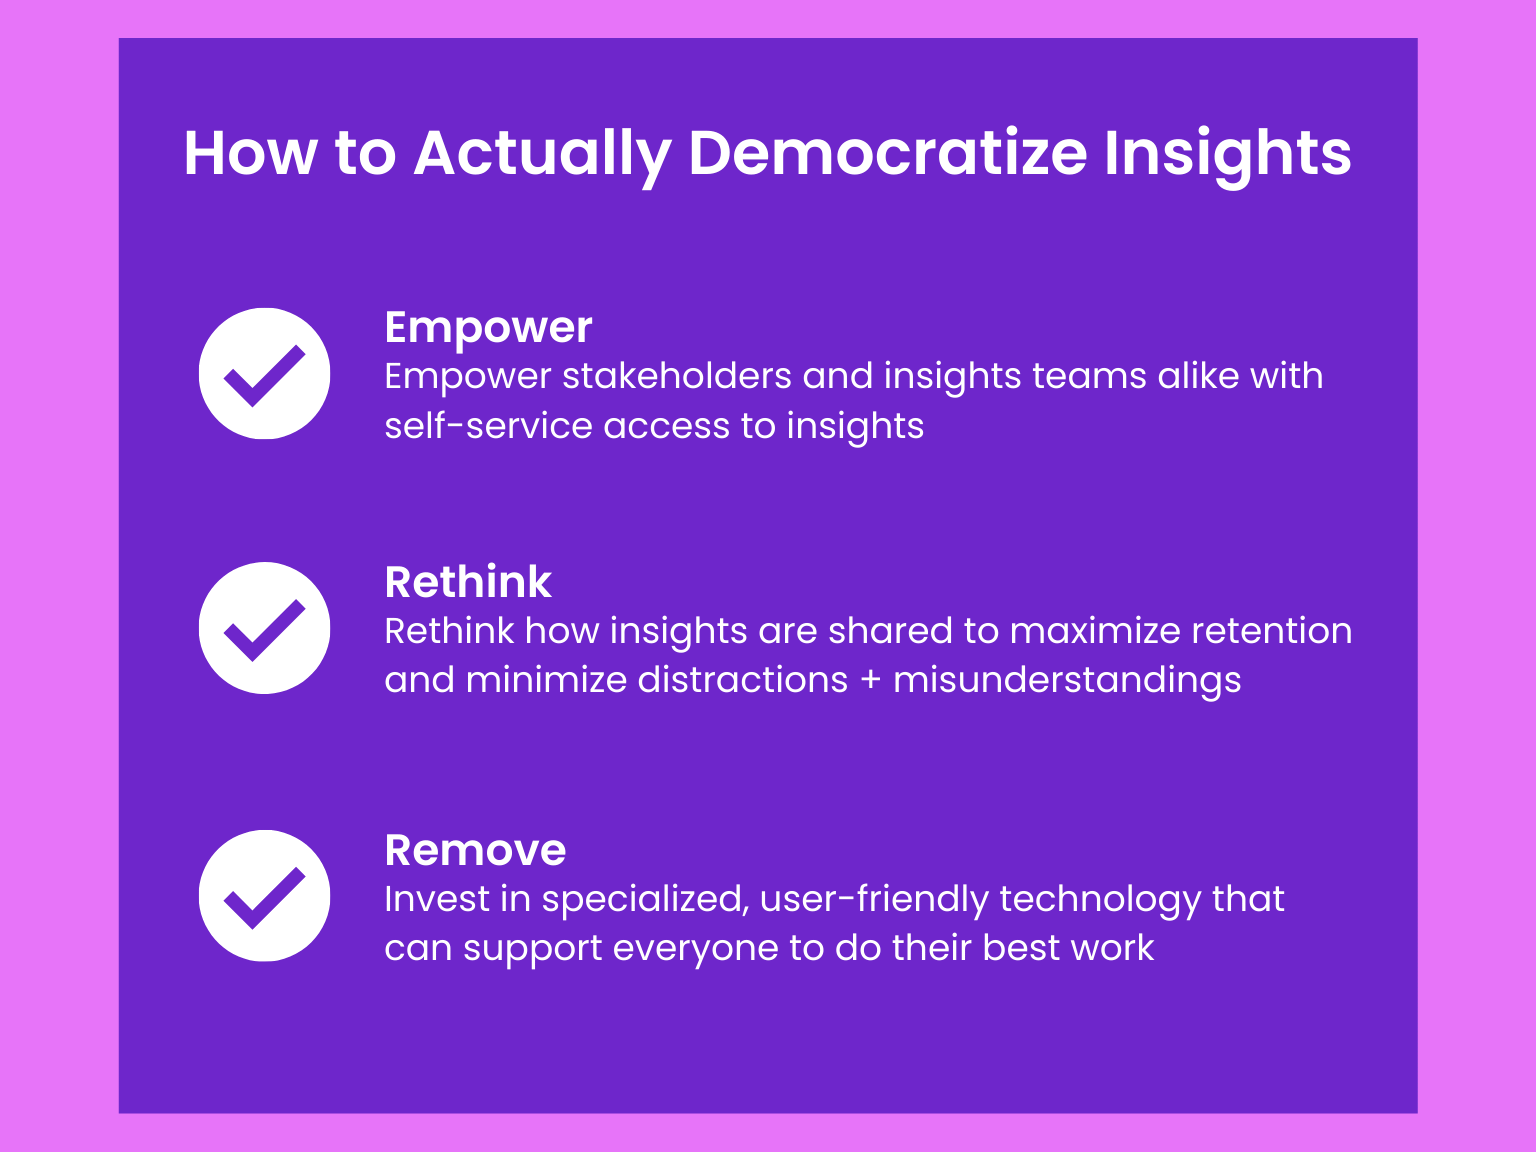 how to actually democratize insights